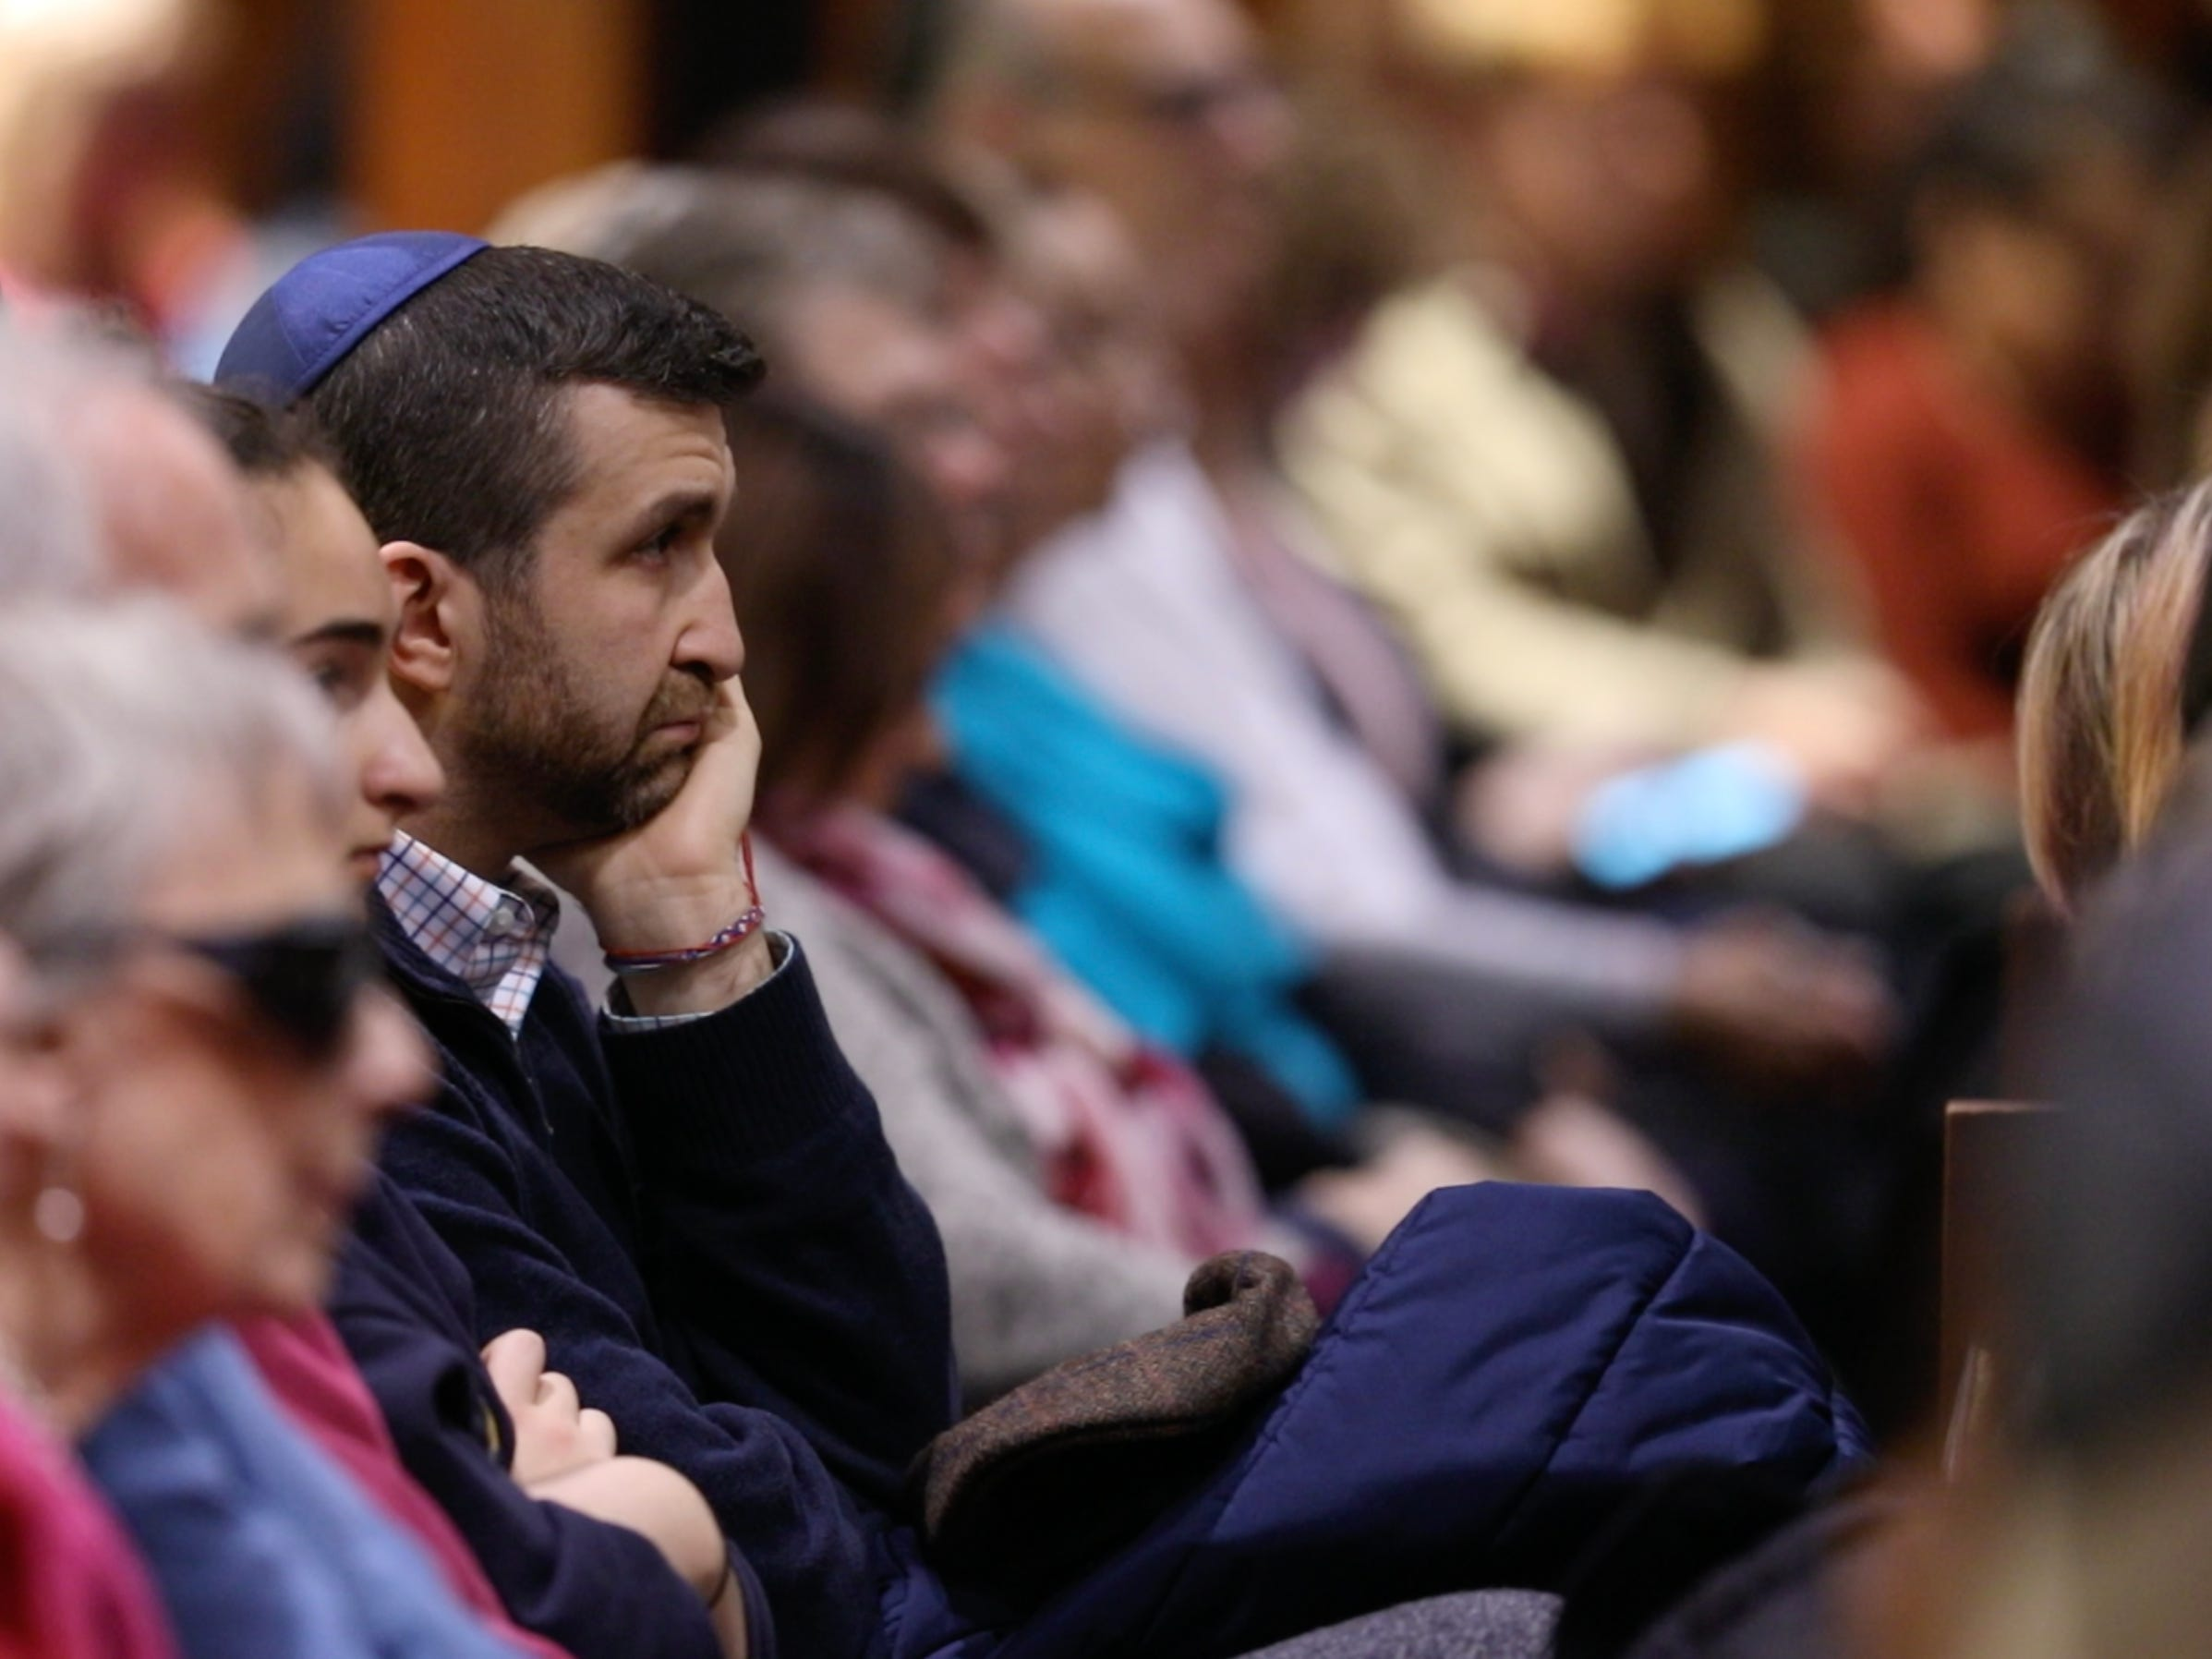 A standing-room crowd gathers in support of those who died in the fatal shooting at a Pittsburgh synagogue.